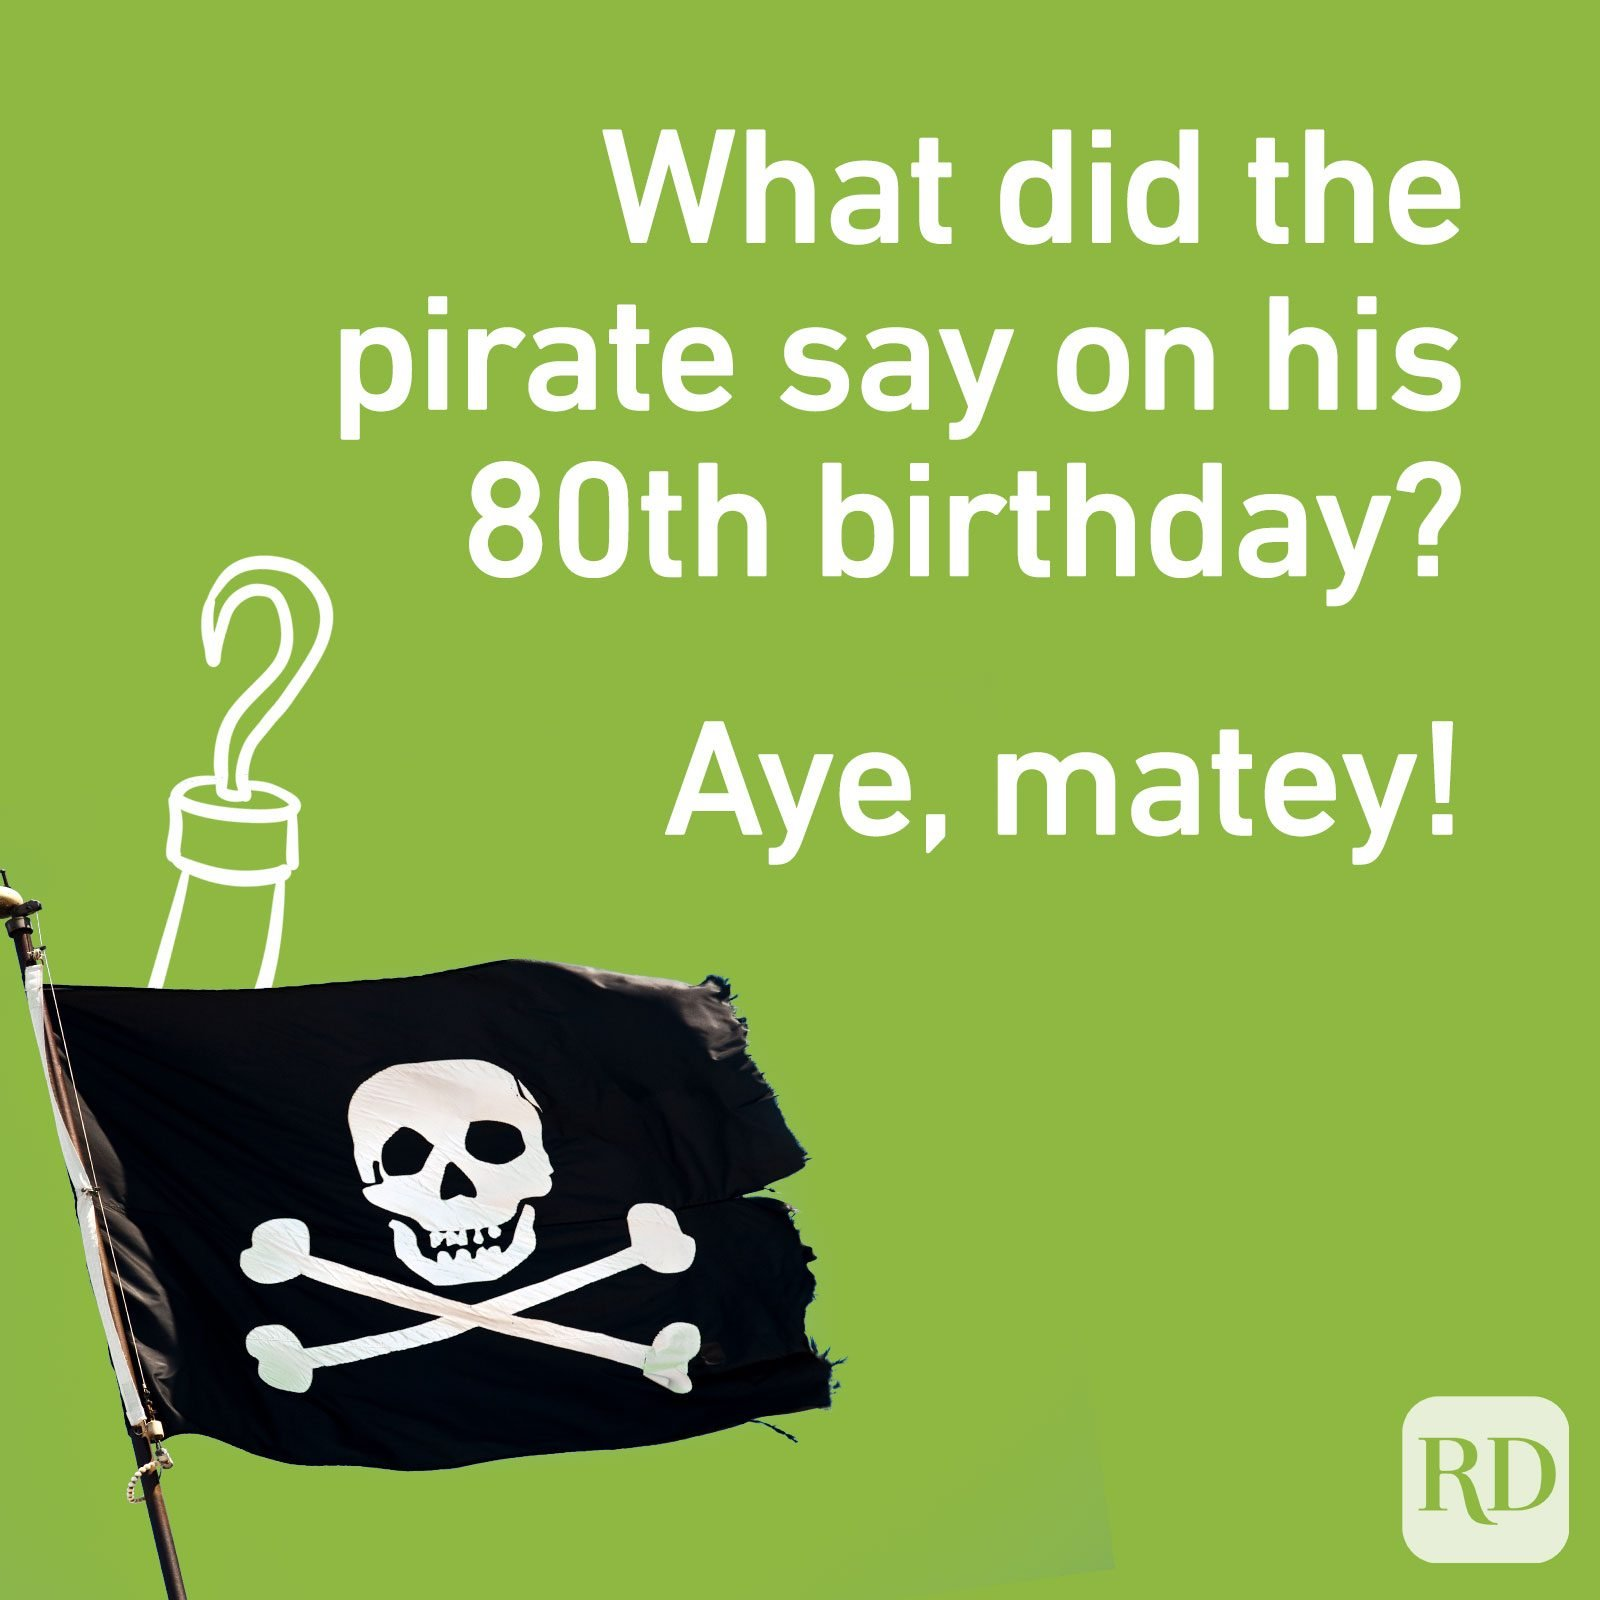 What did the pirate say on his 80th birthday? Aye, matey!